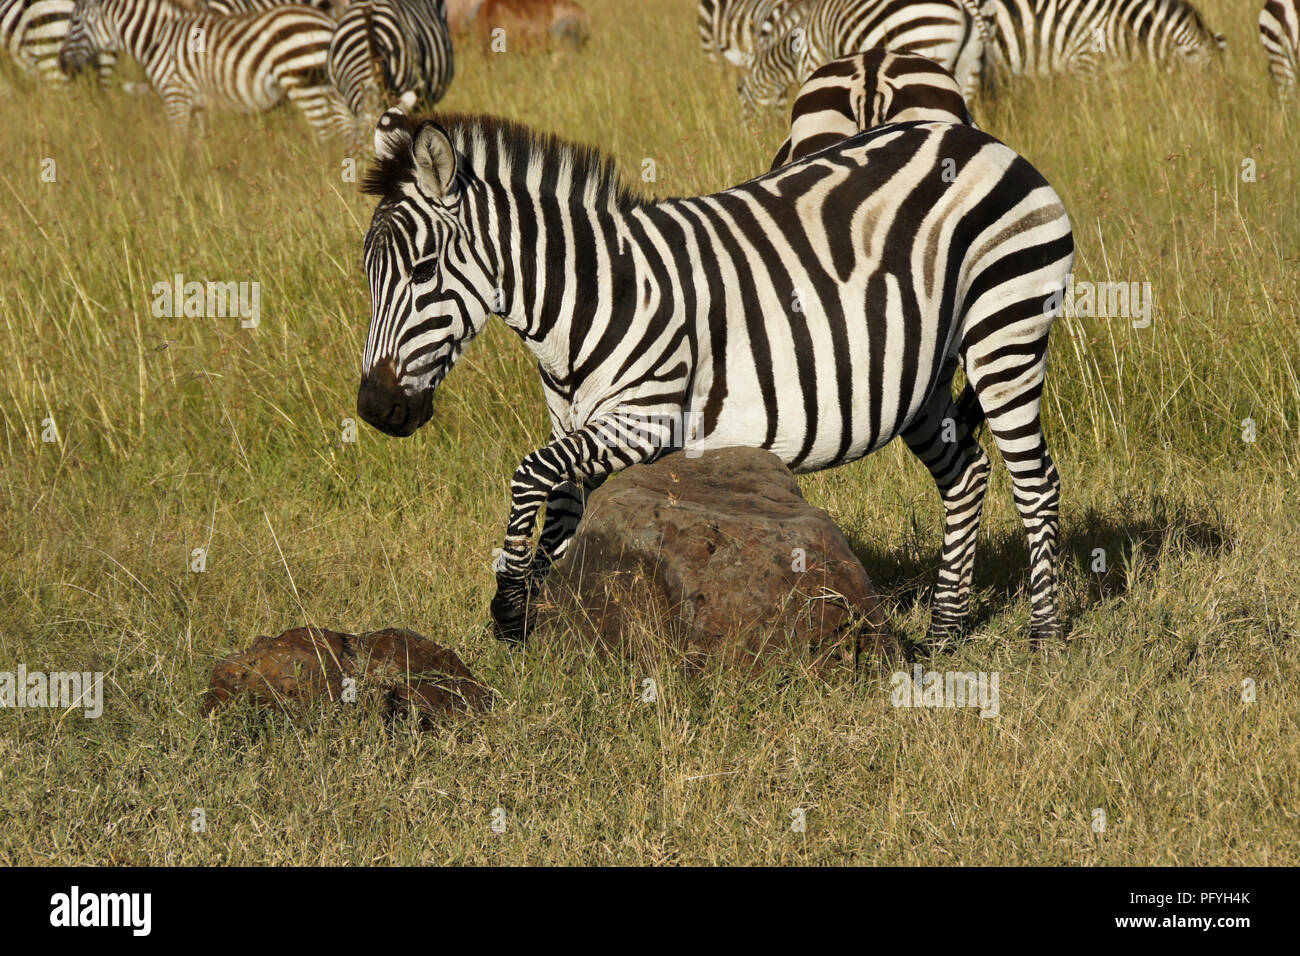 Burchell's (common, plains) zebra scratches its belly on a rock while other zebras and topis graze, Masai Mara Game Reserve, Kenya - Stock Photo